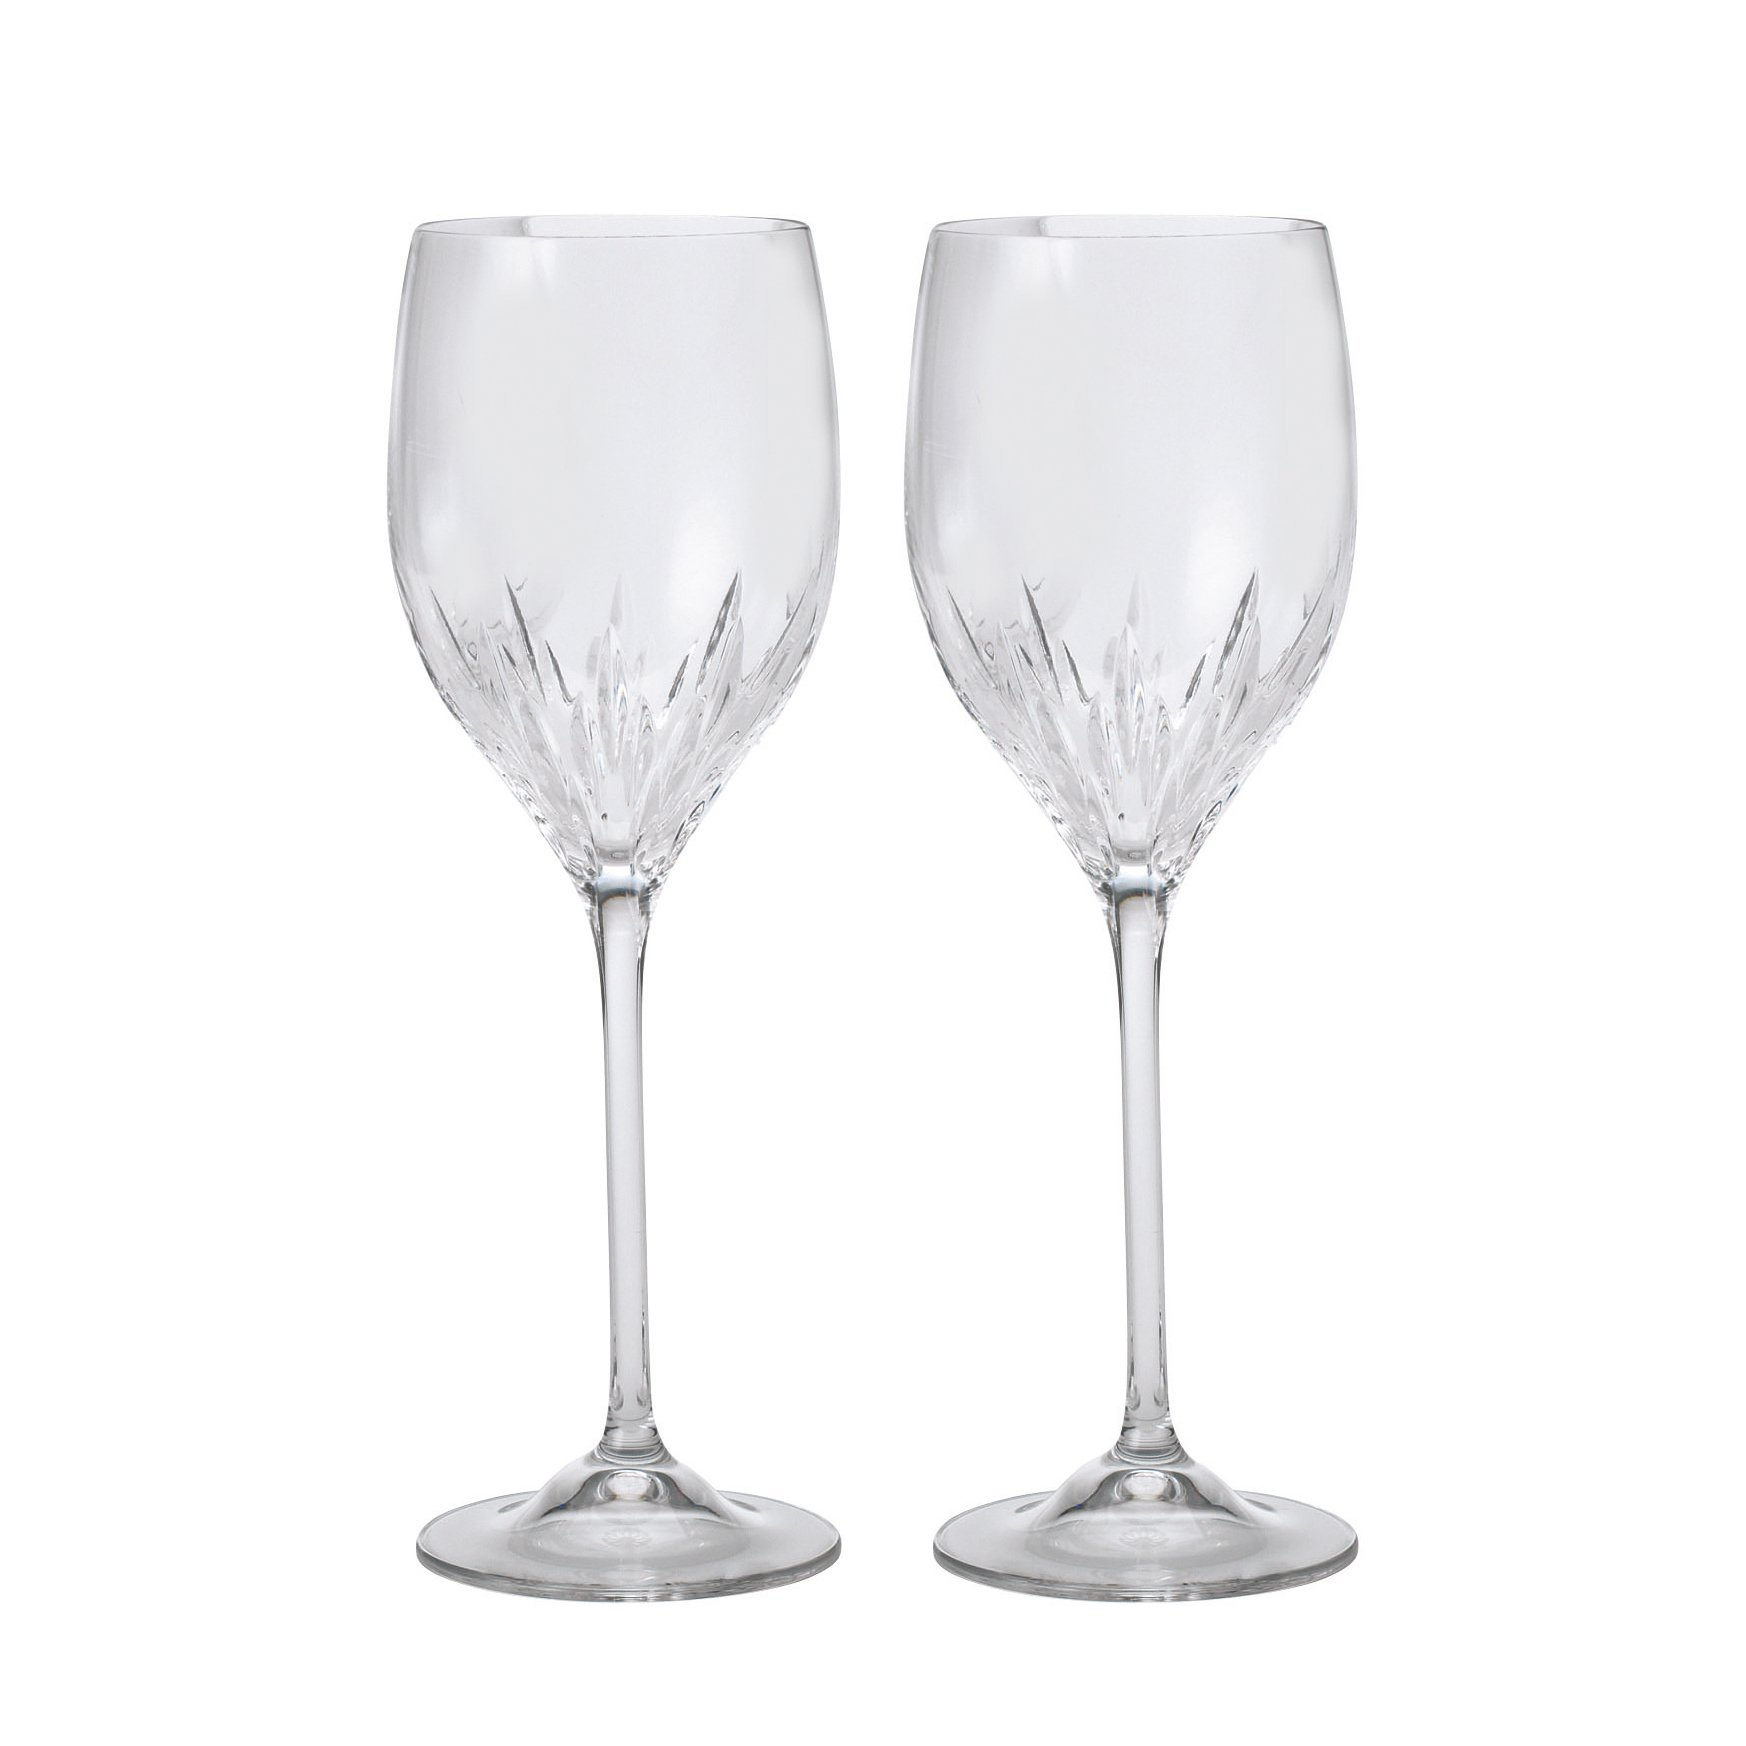 Vera wang wedgwood duchesse crystal wine set of 2 wedgwood australia - Wedgwood crystal wine glasses ...